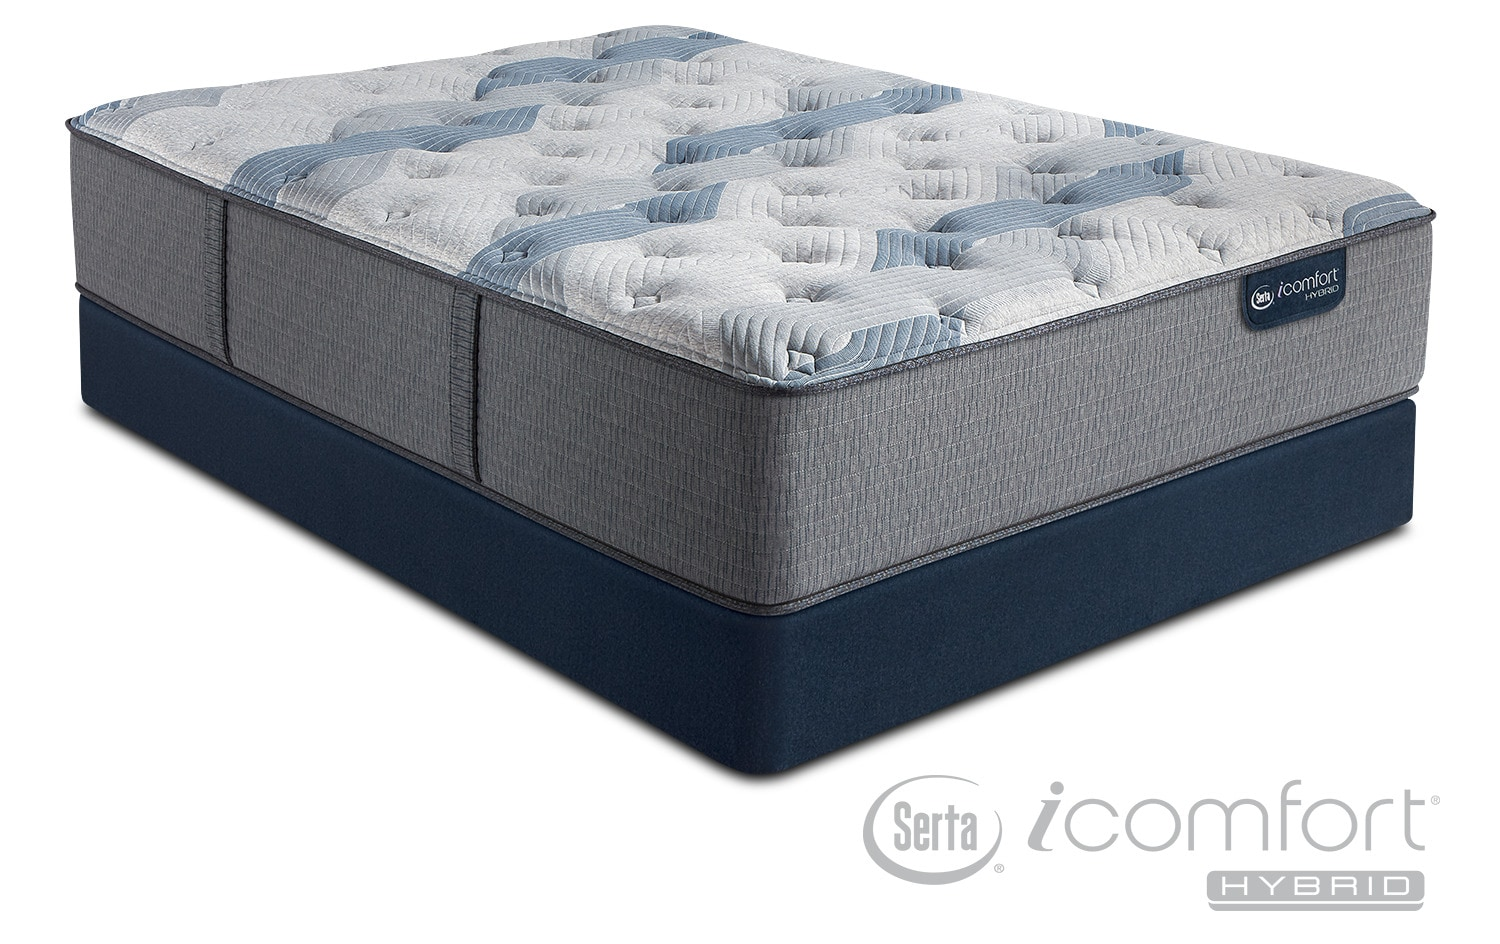 Icomfort Hybrid Reviews Blue Fusion 100 Firm Mattress